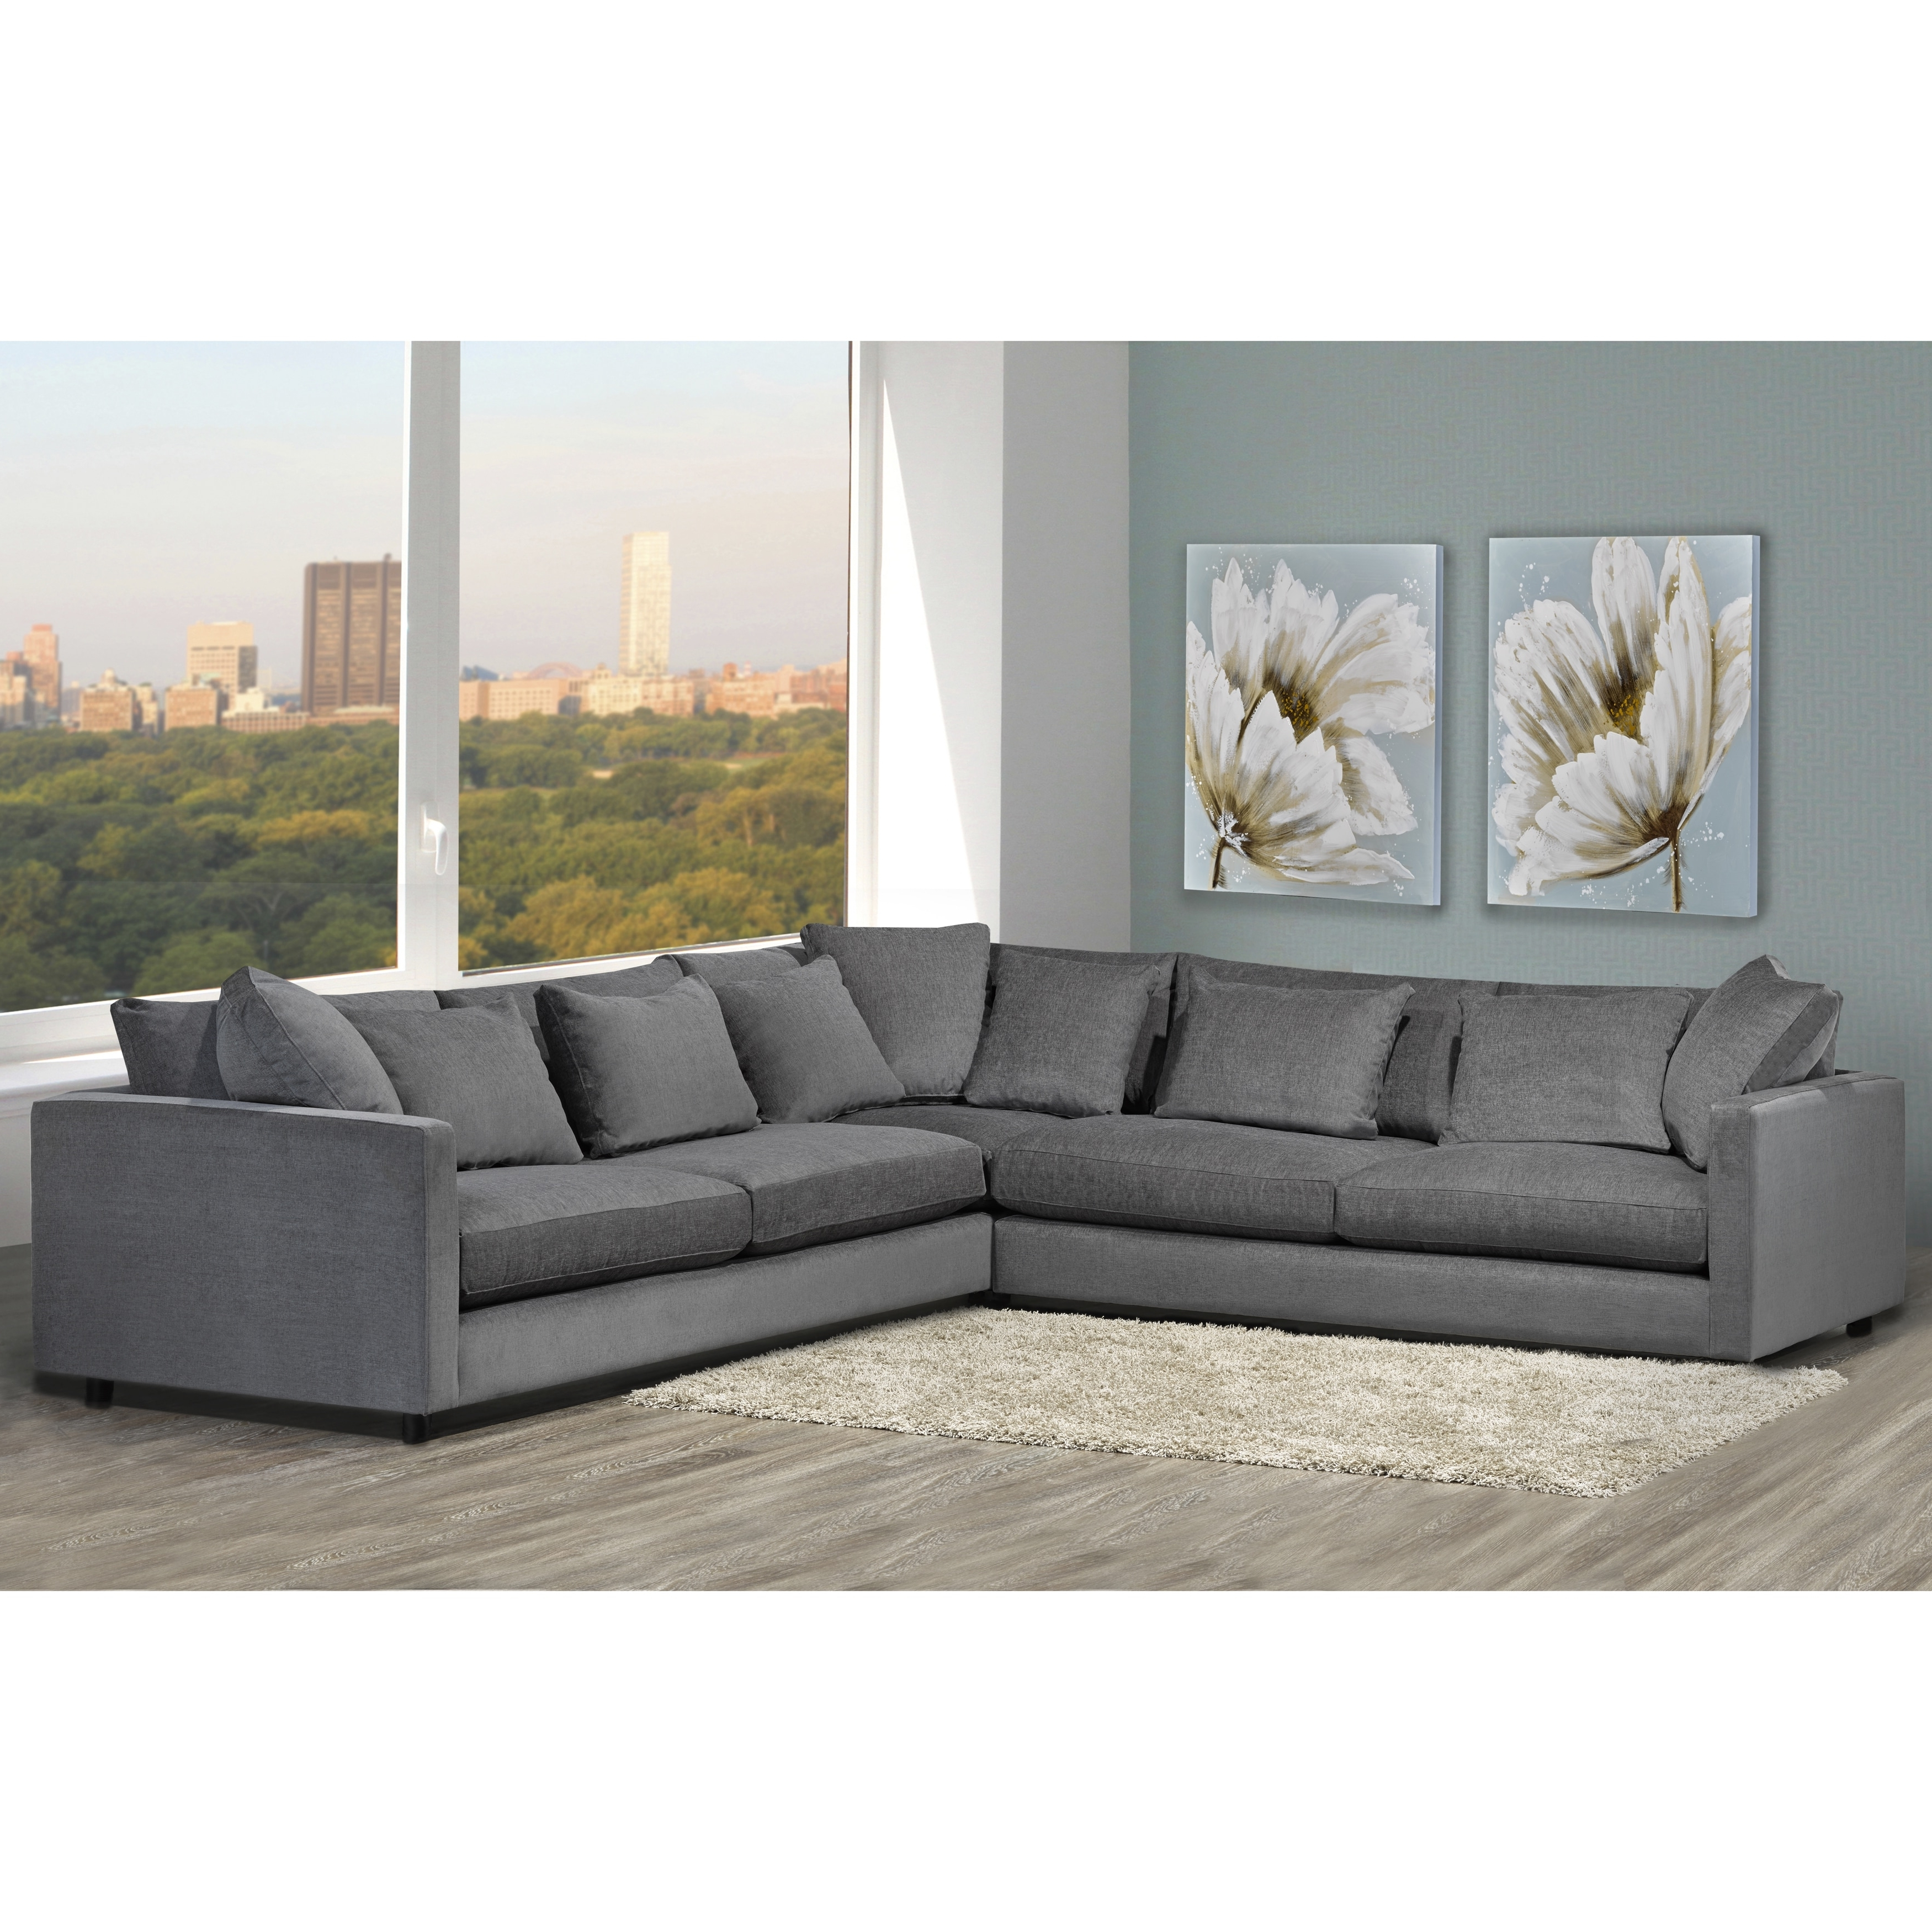 Made To Order Modern Lounge Down Filled Grey Fabric Sectional Sofa In Best And Newest Down Filled Sectional Sofas (View 10 of 15)